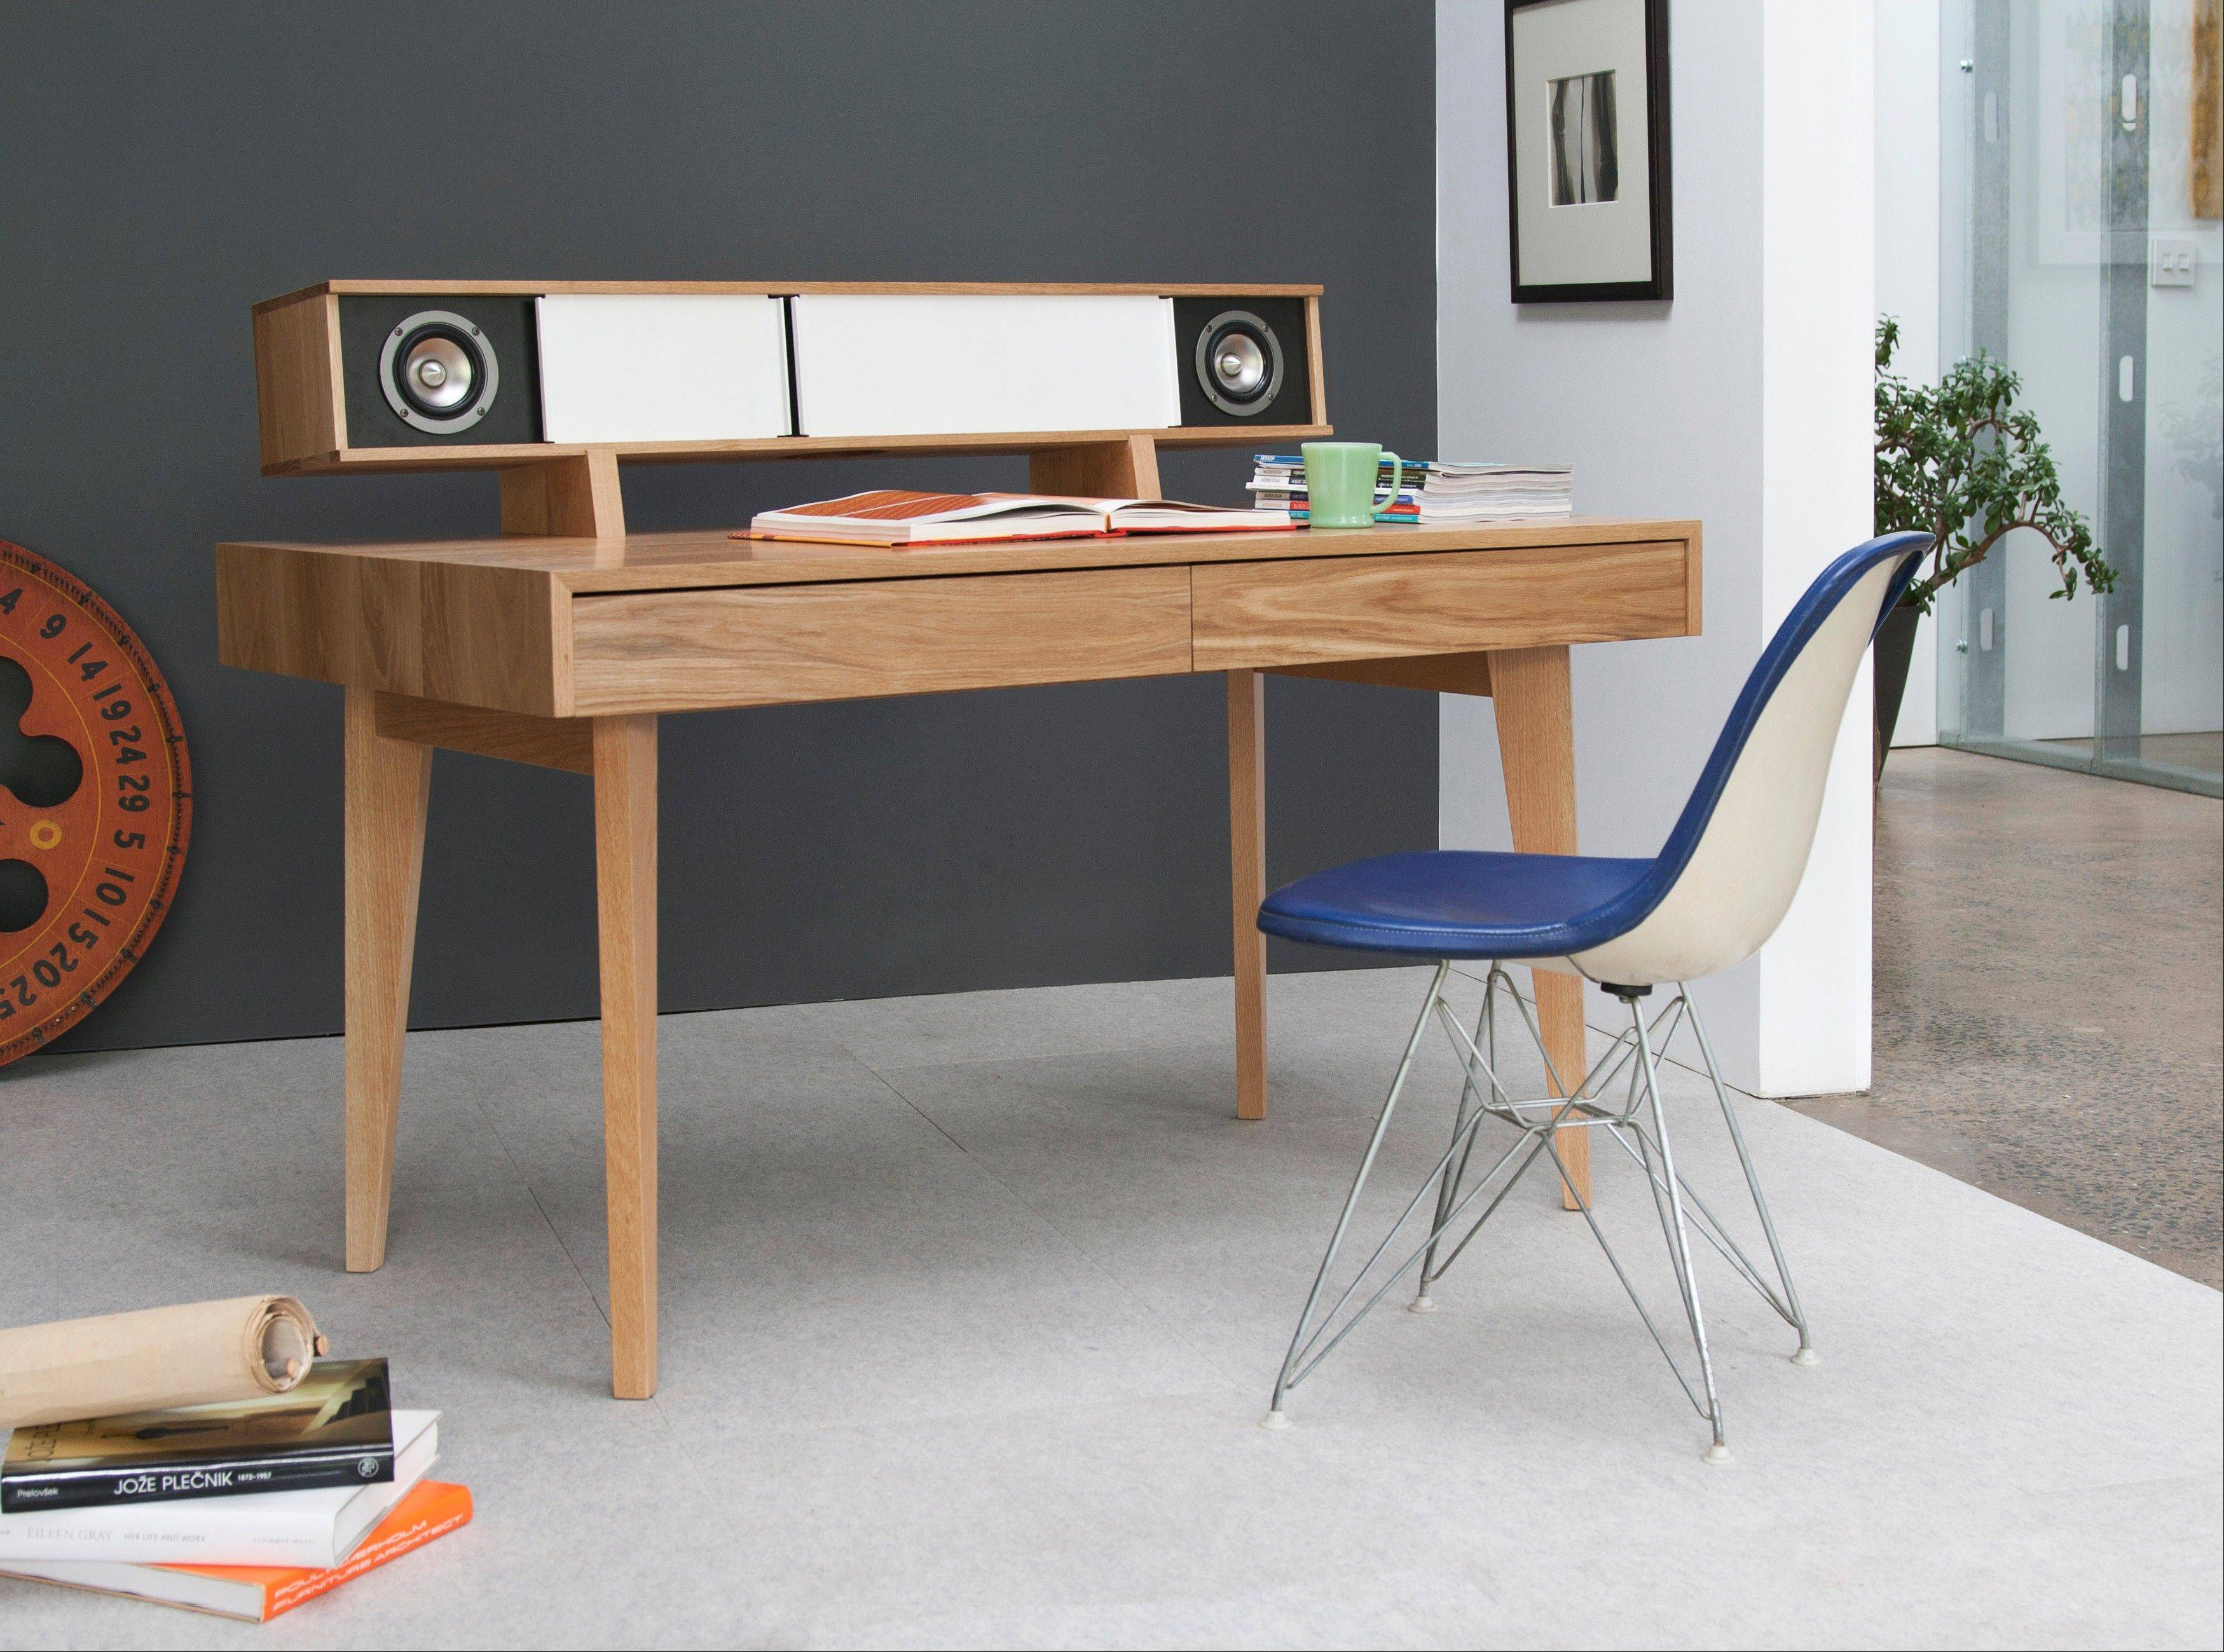 The integration of technology into home decor has come a long way. Symbol�s Audio Desk with high quality speakers built into a sleek desk, available in maple, walnut, oak or cherry.